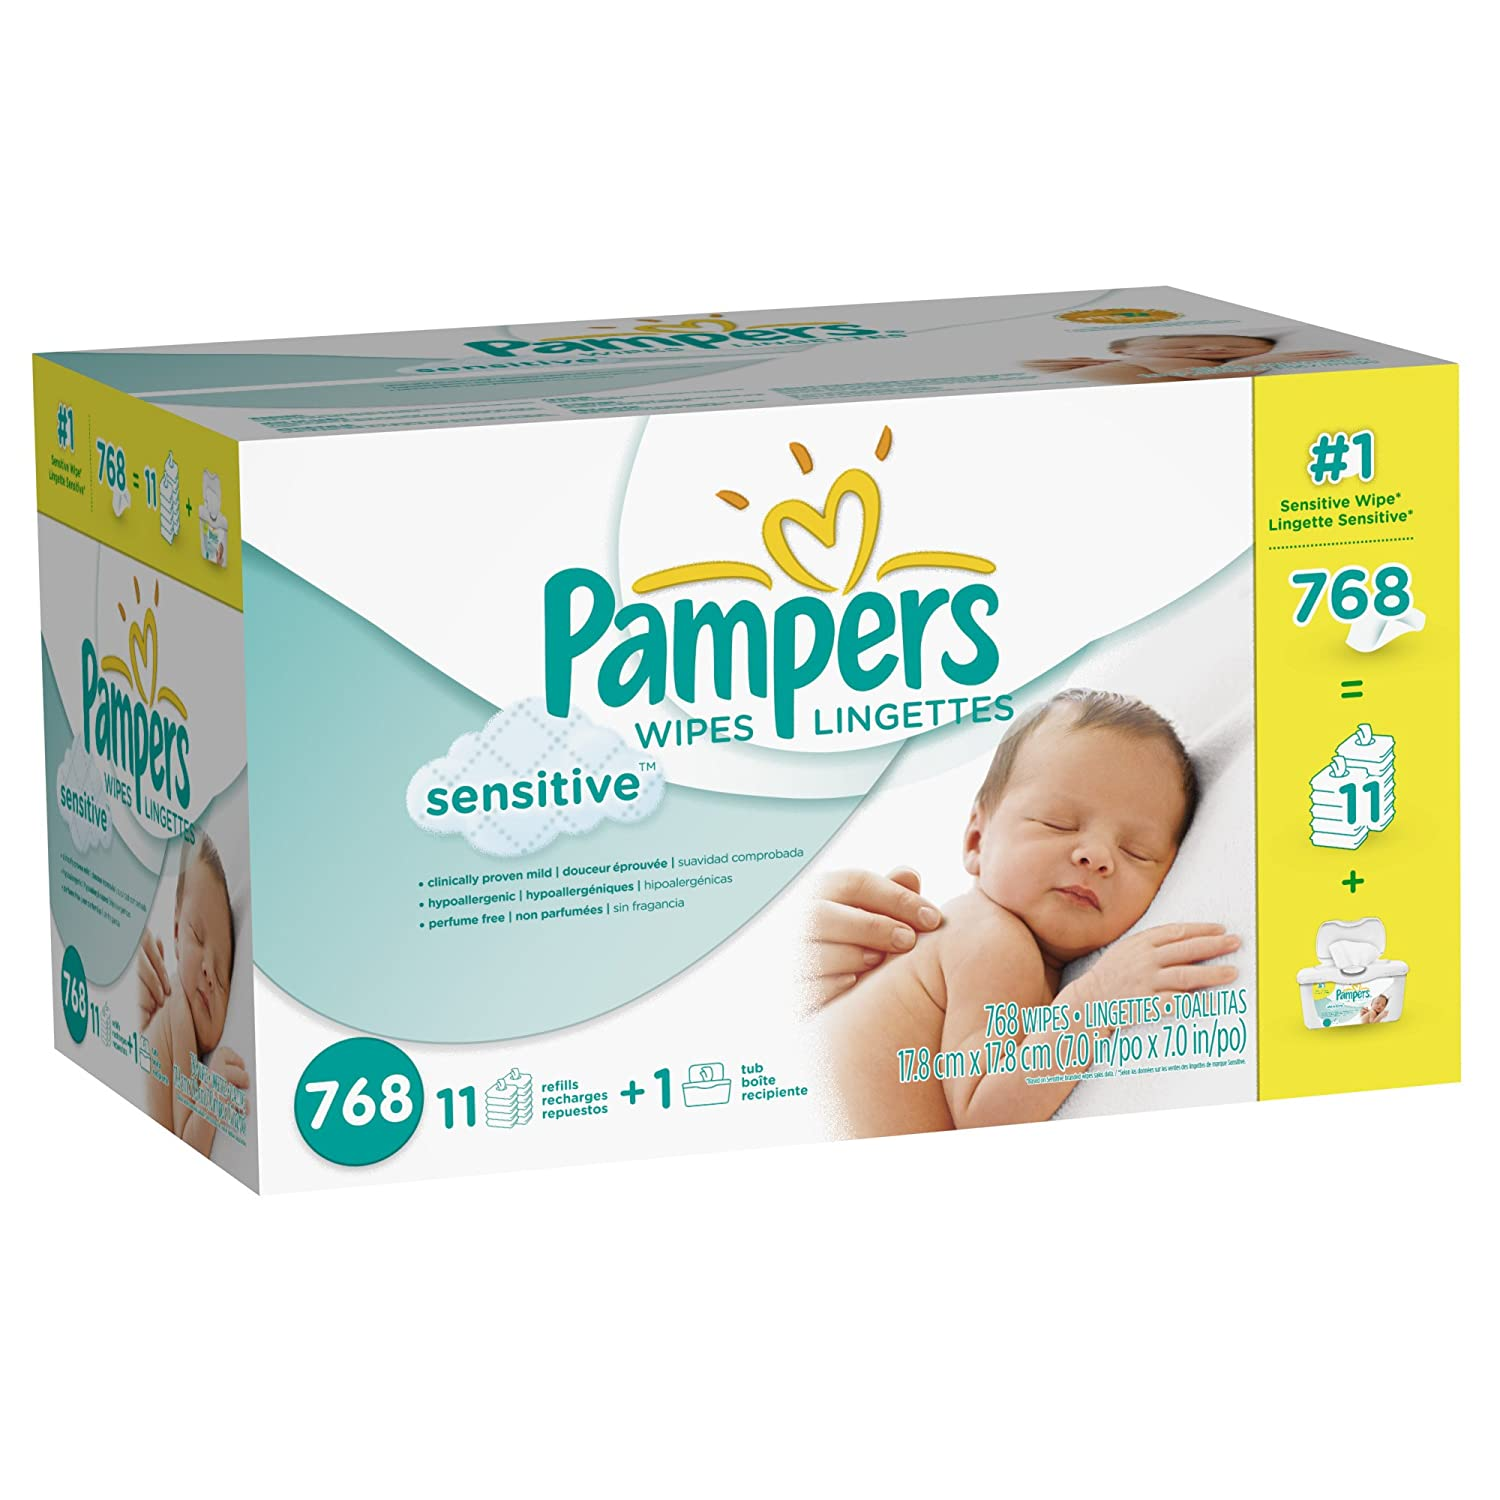 Pampers Sensitive Wipes 12x Box with Tub, 768 Count 37000836728